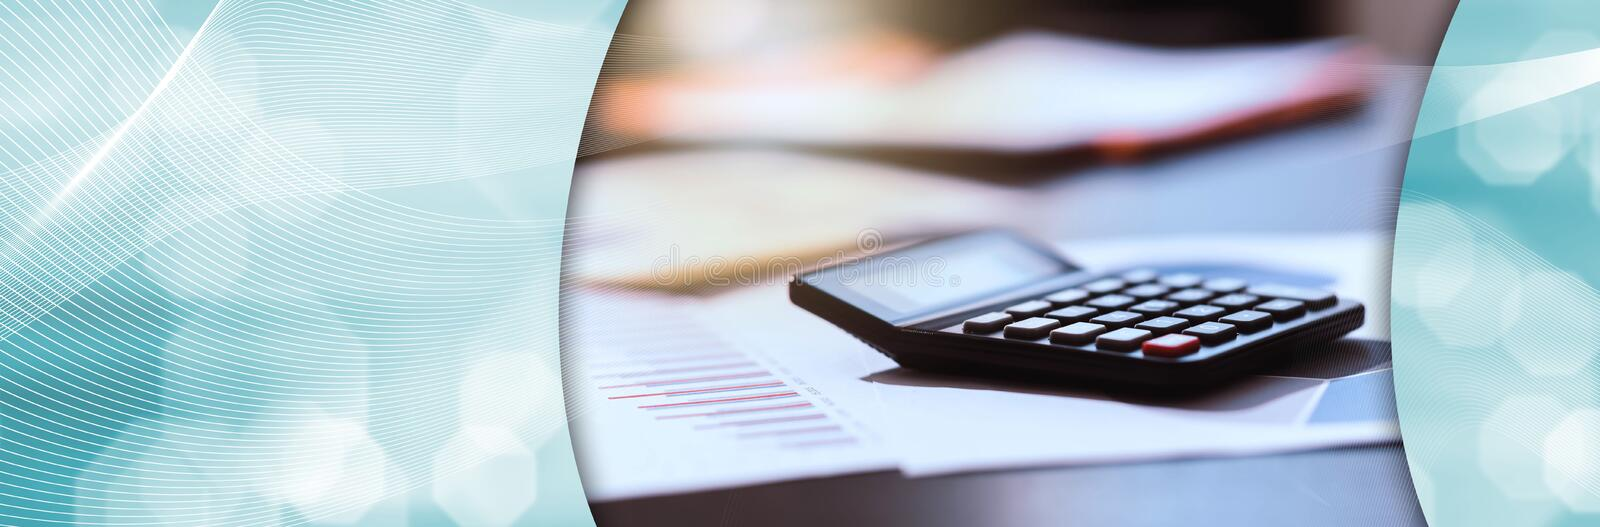 Calculator and financial documents; panoramic banner royalty free stock photography